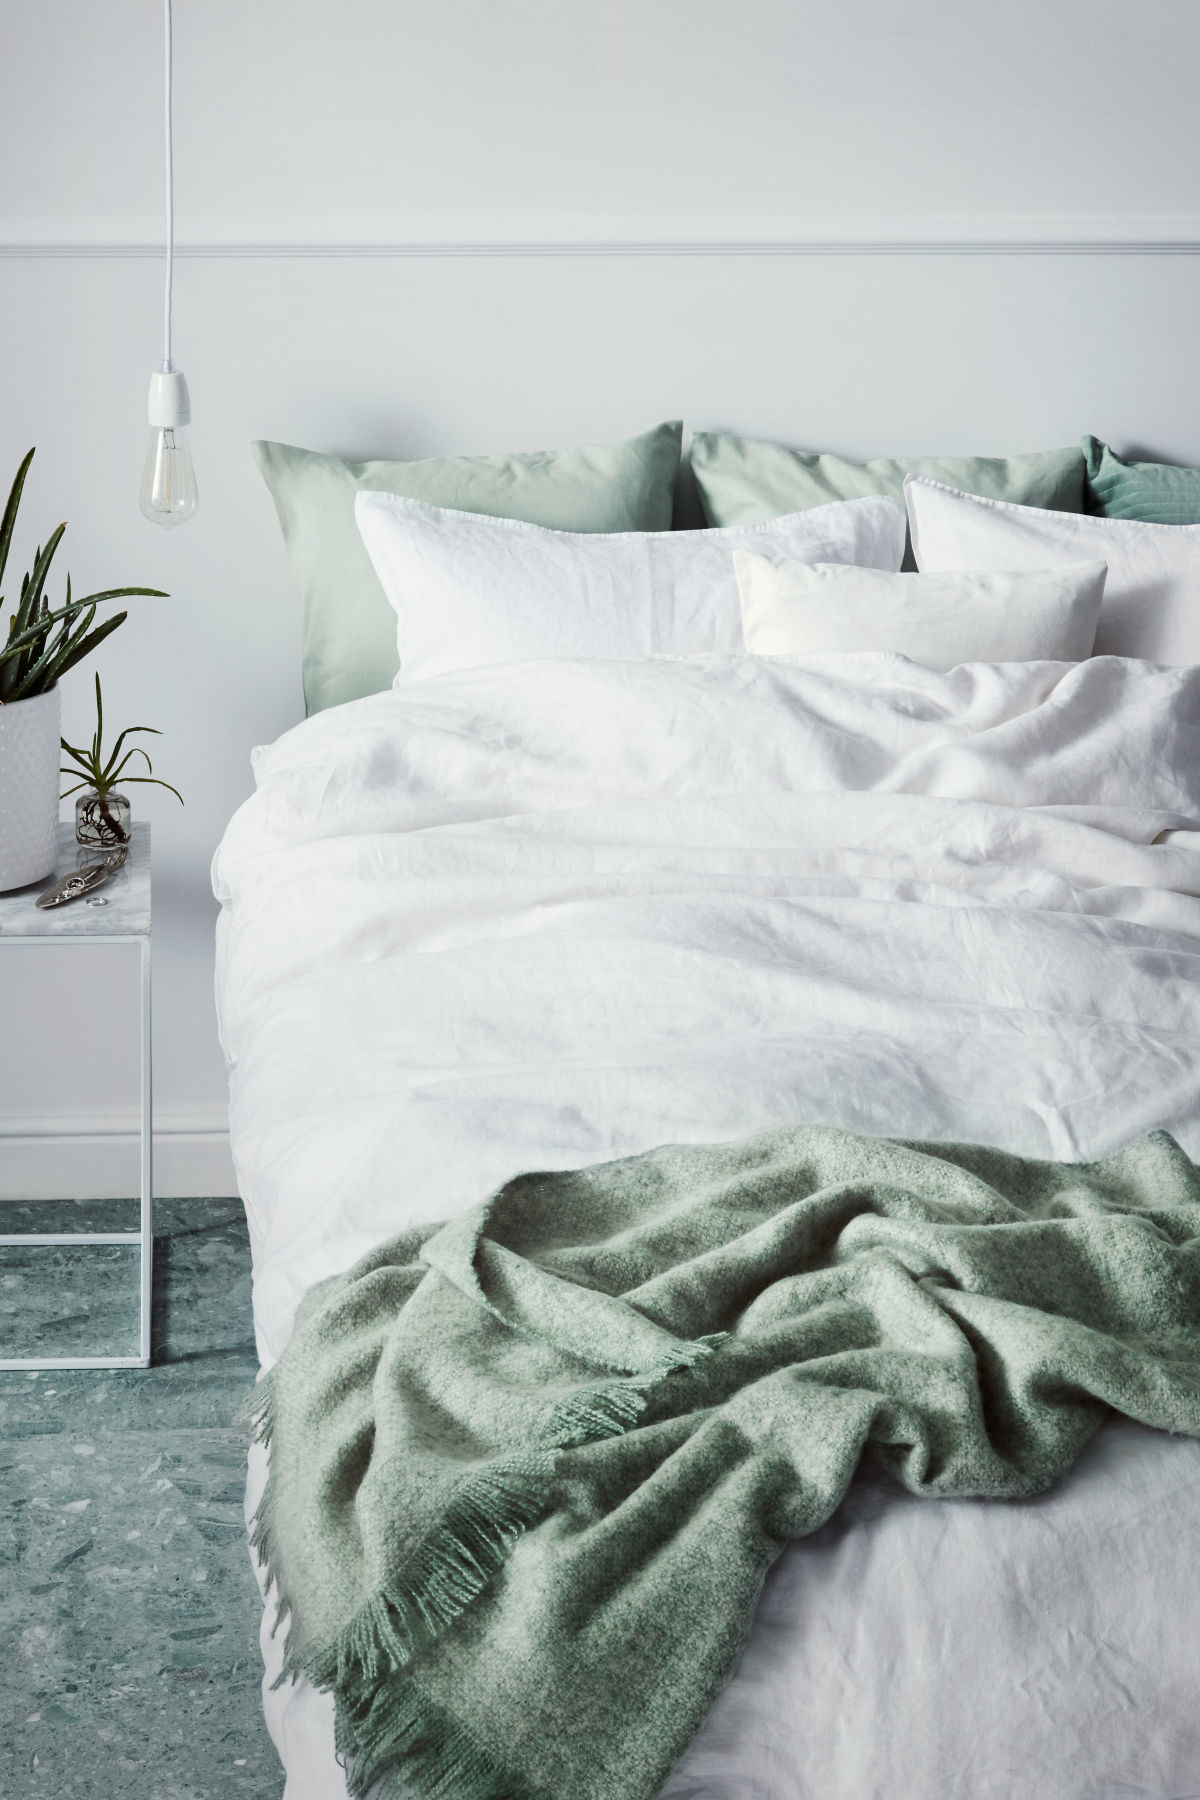 Hu0026M Has Reasonably Priced Bedding To Give Your Room A Chill, Minimalist  Look.